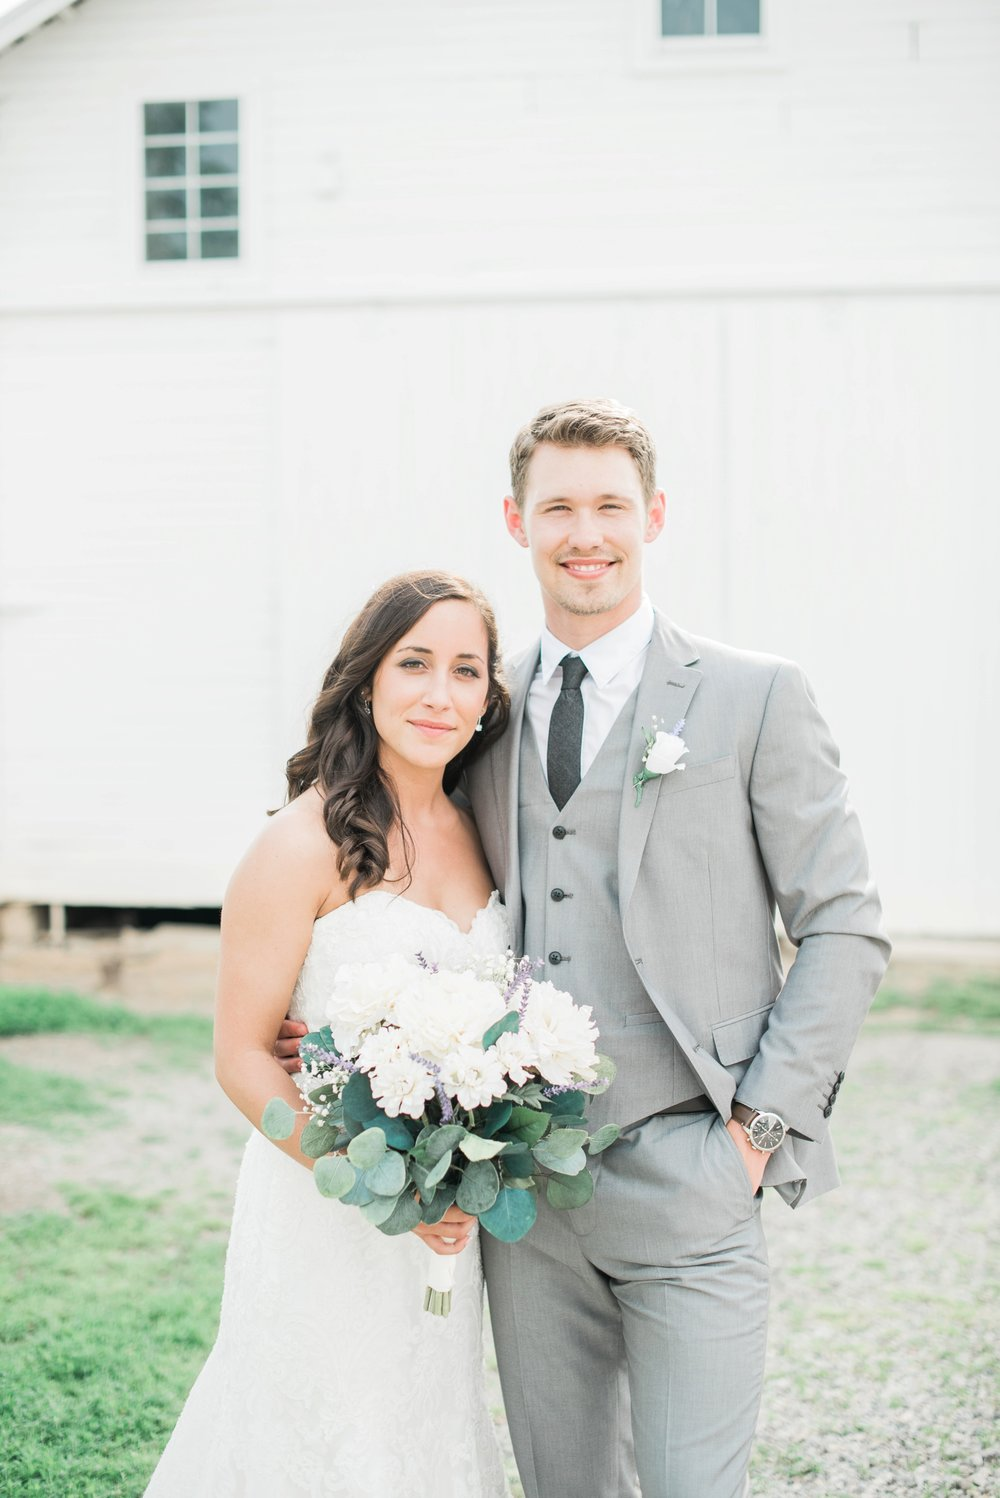 niederman-farm-wedding-cincinnati-ohio-photographer_0079.jpg